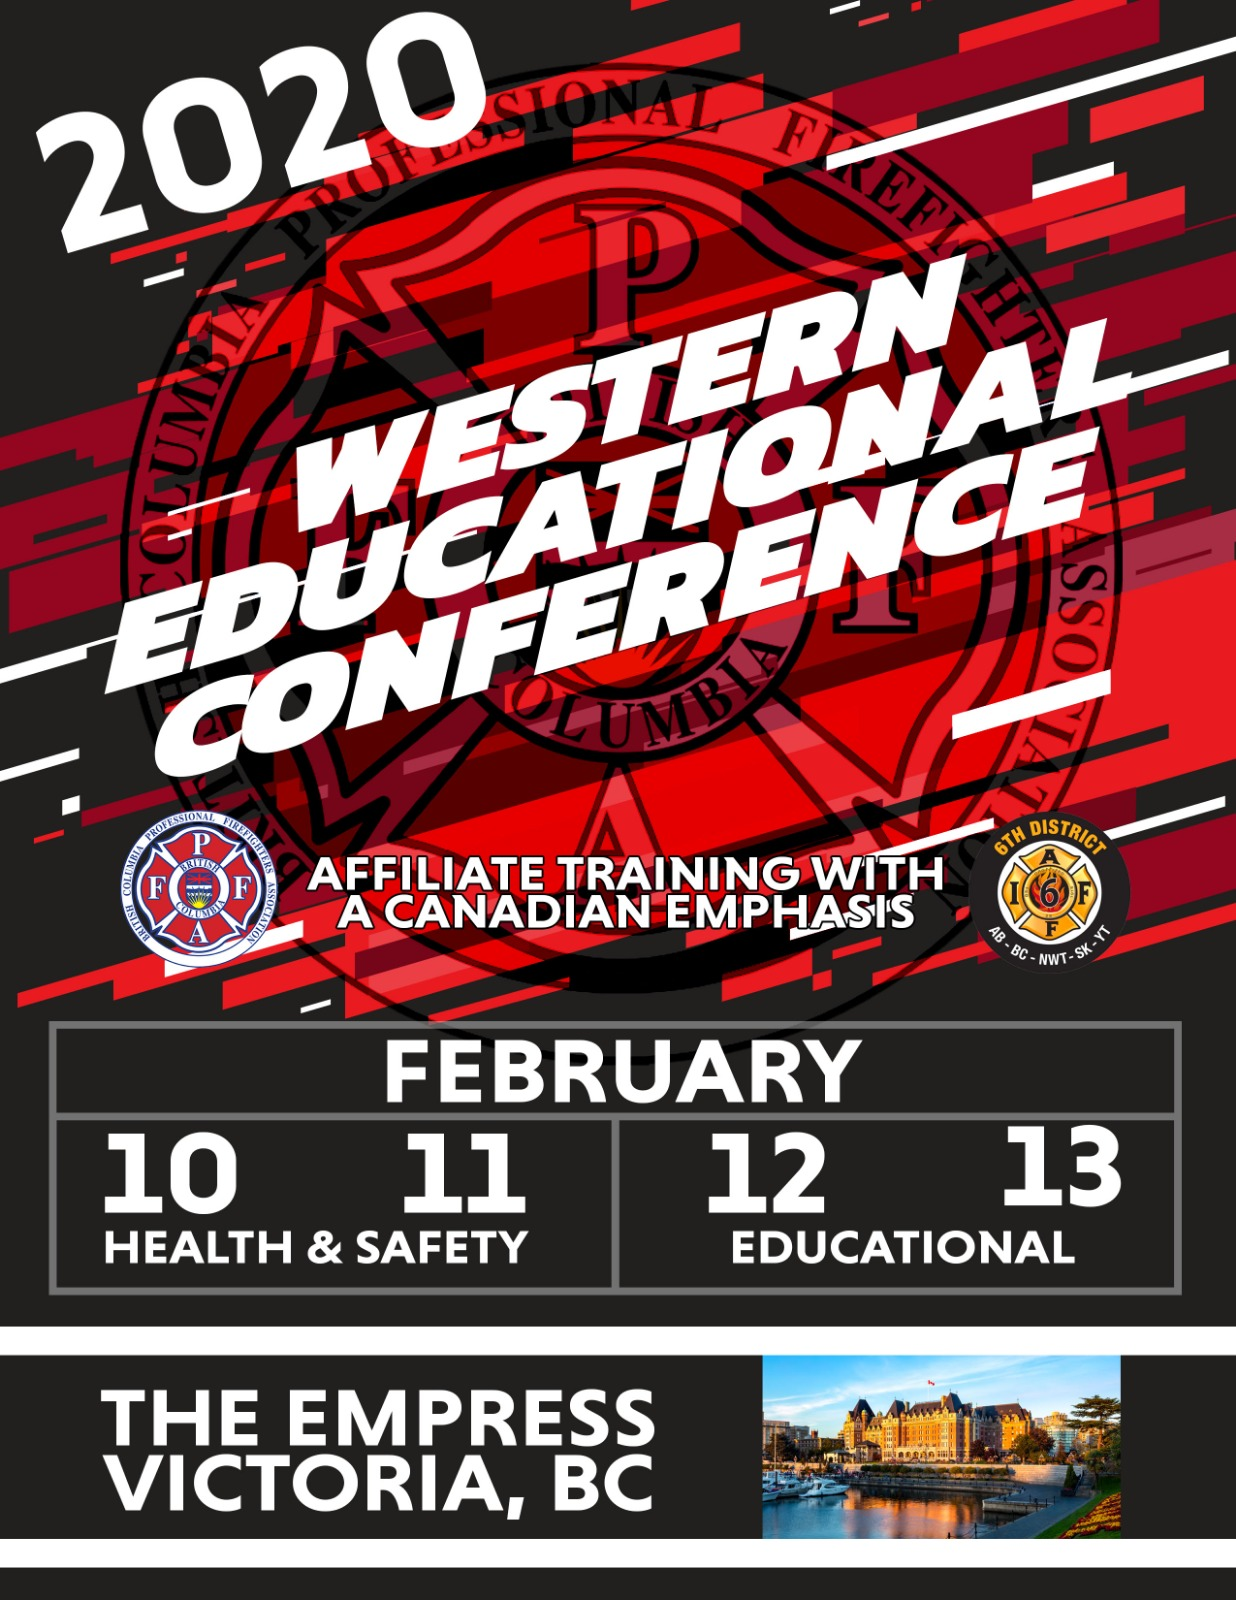 To all Western Affiliates, - We invite you to attend the Biennial Western Educational & Training Conference, February 10-13, 2020 held in beautiful Victoria, BC at the Fairmont Empress Hotel and Victoria Conference Centre.Our panel of expert instructors from across Canada and the entire IAFF will deliver relevant material important to your Union Officers and Occupational Health & Safety advocates. We are confident the material presented will assist both new and current leaders of your association in being prepared in all aspects of labour representation and occupational health and safety.There will be an array of social opportunities to network and collaborate in the important issues. We hope you are able to tour the City of Victoria and Vancouver Island area before or after your workshop sessions.